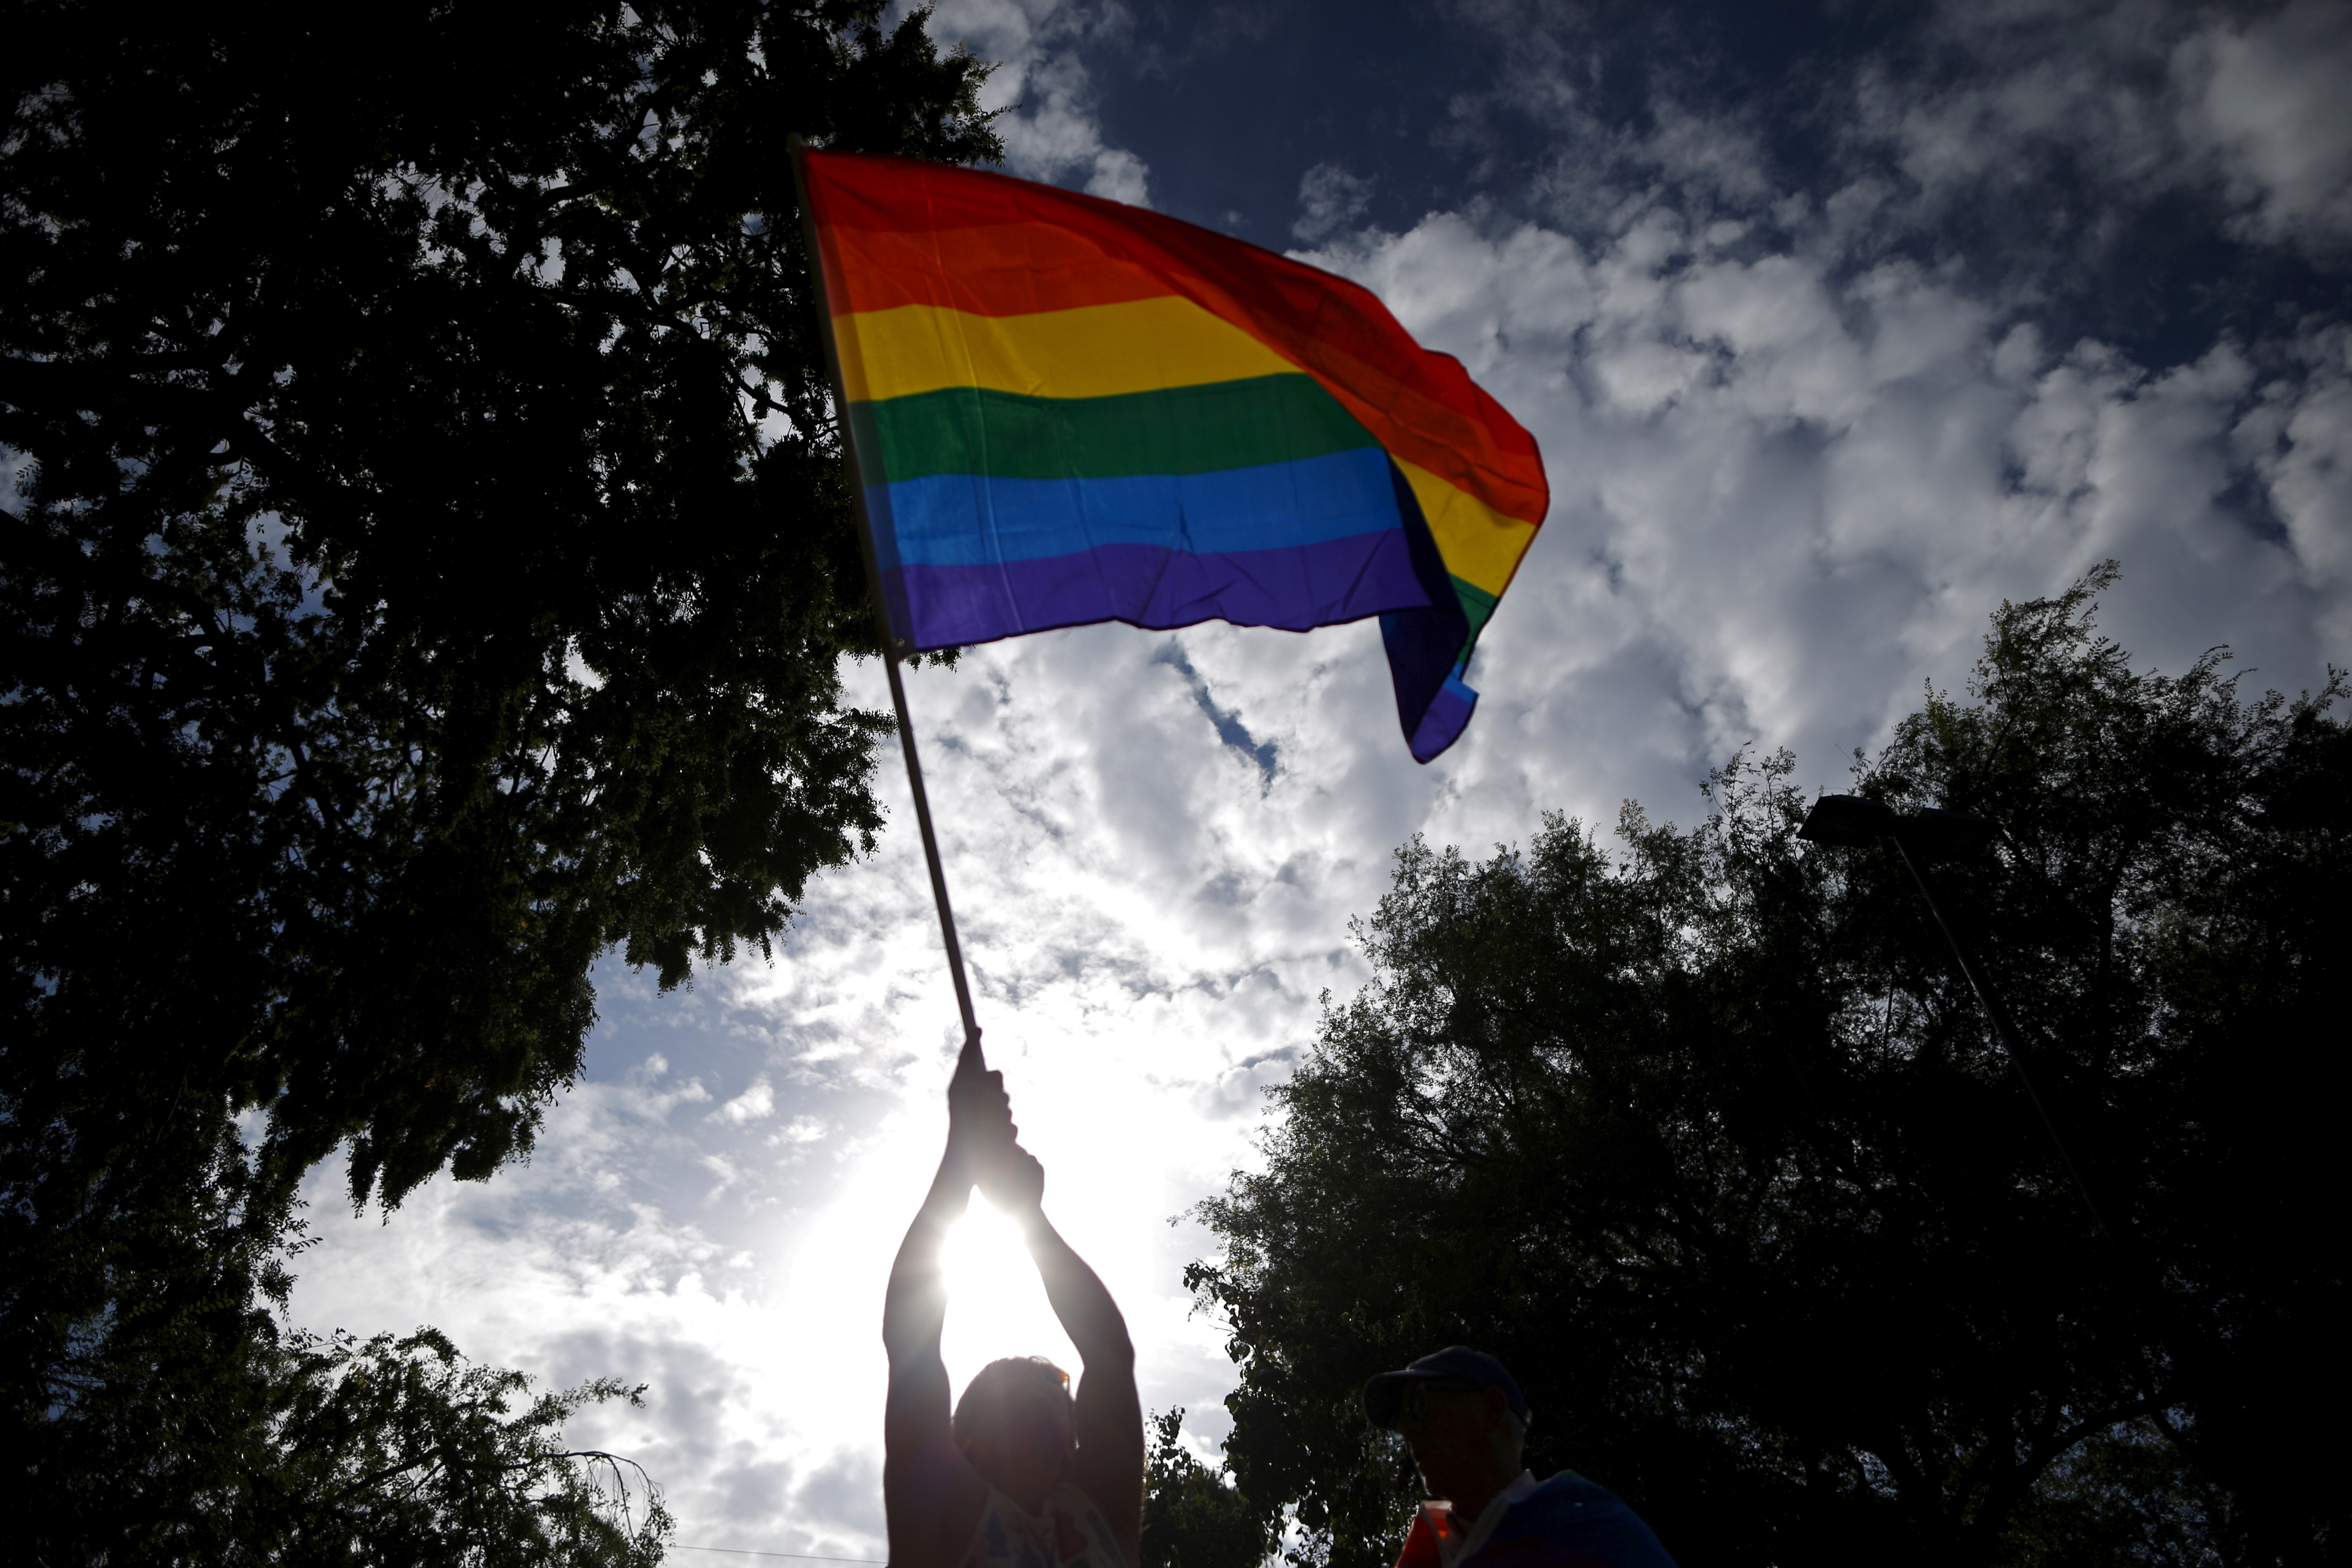 A man waves an LGBT equality rainbow flag at a celebration rally in West Hollywood, California, June 26, 2015. REUTERS/Lucy Nicholson